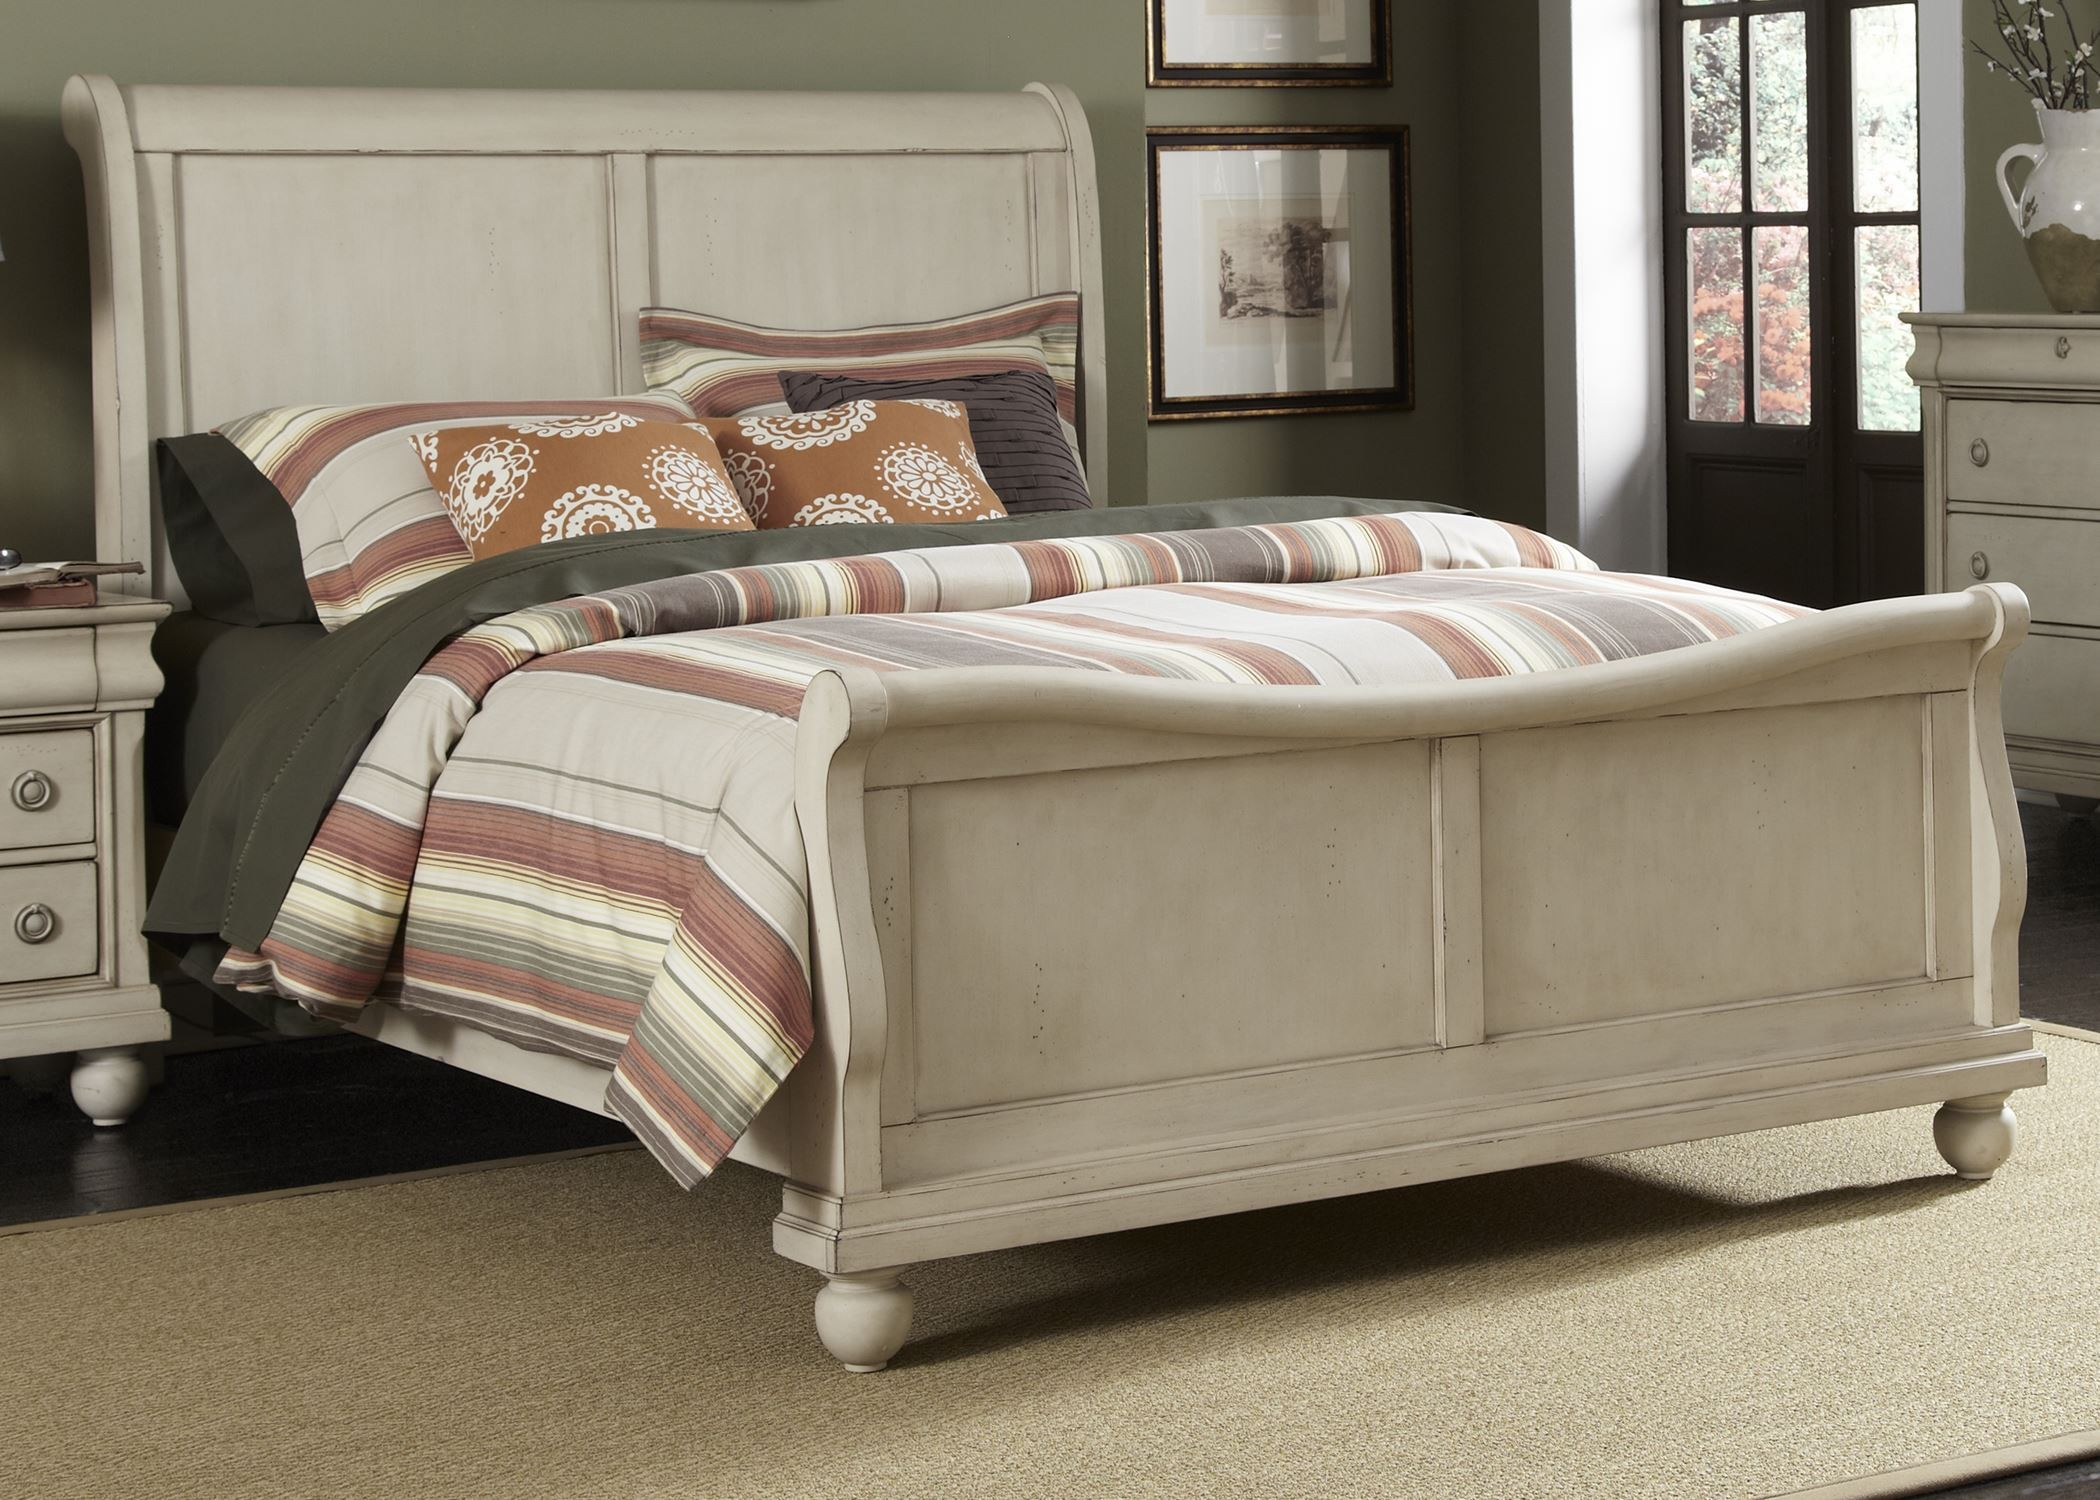 Rustic Traditions II Sleigh Bedroom Set From Liberty (689